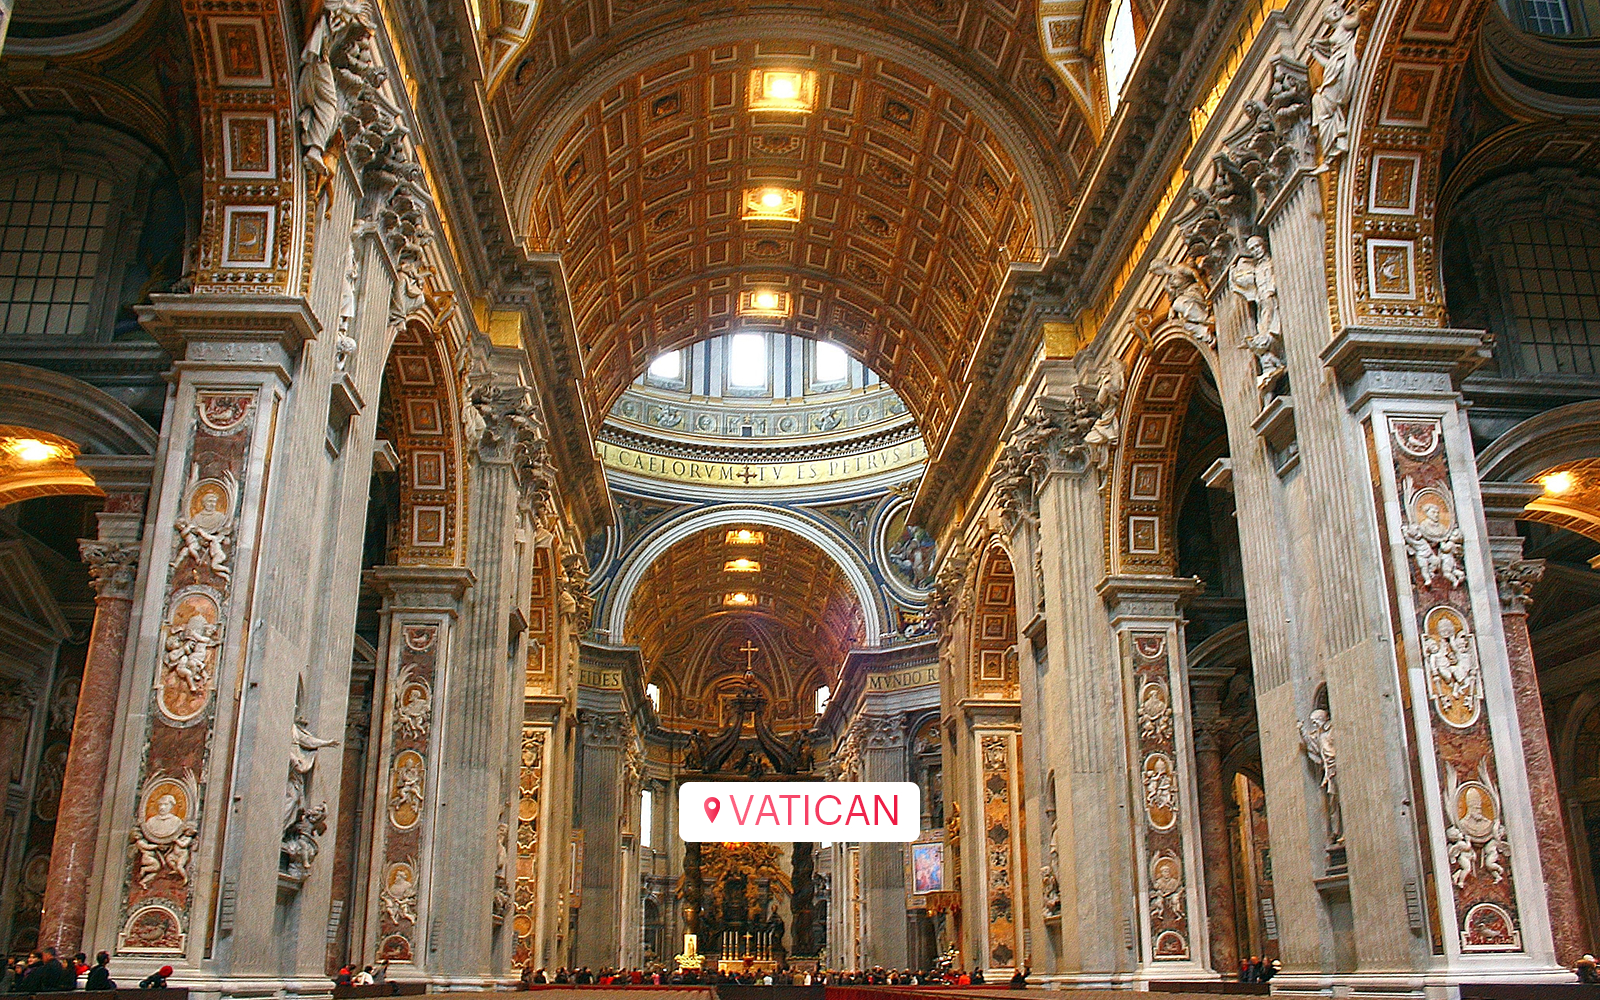 73fe99d0 bed7 4a6b 8df9 11129ec0121c 6732 rome skip the line vatican museum and sistine chapel tickets 03